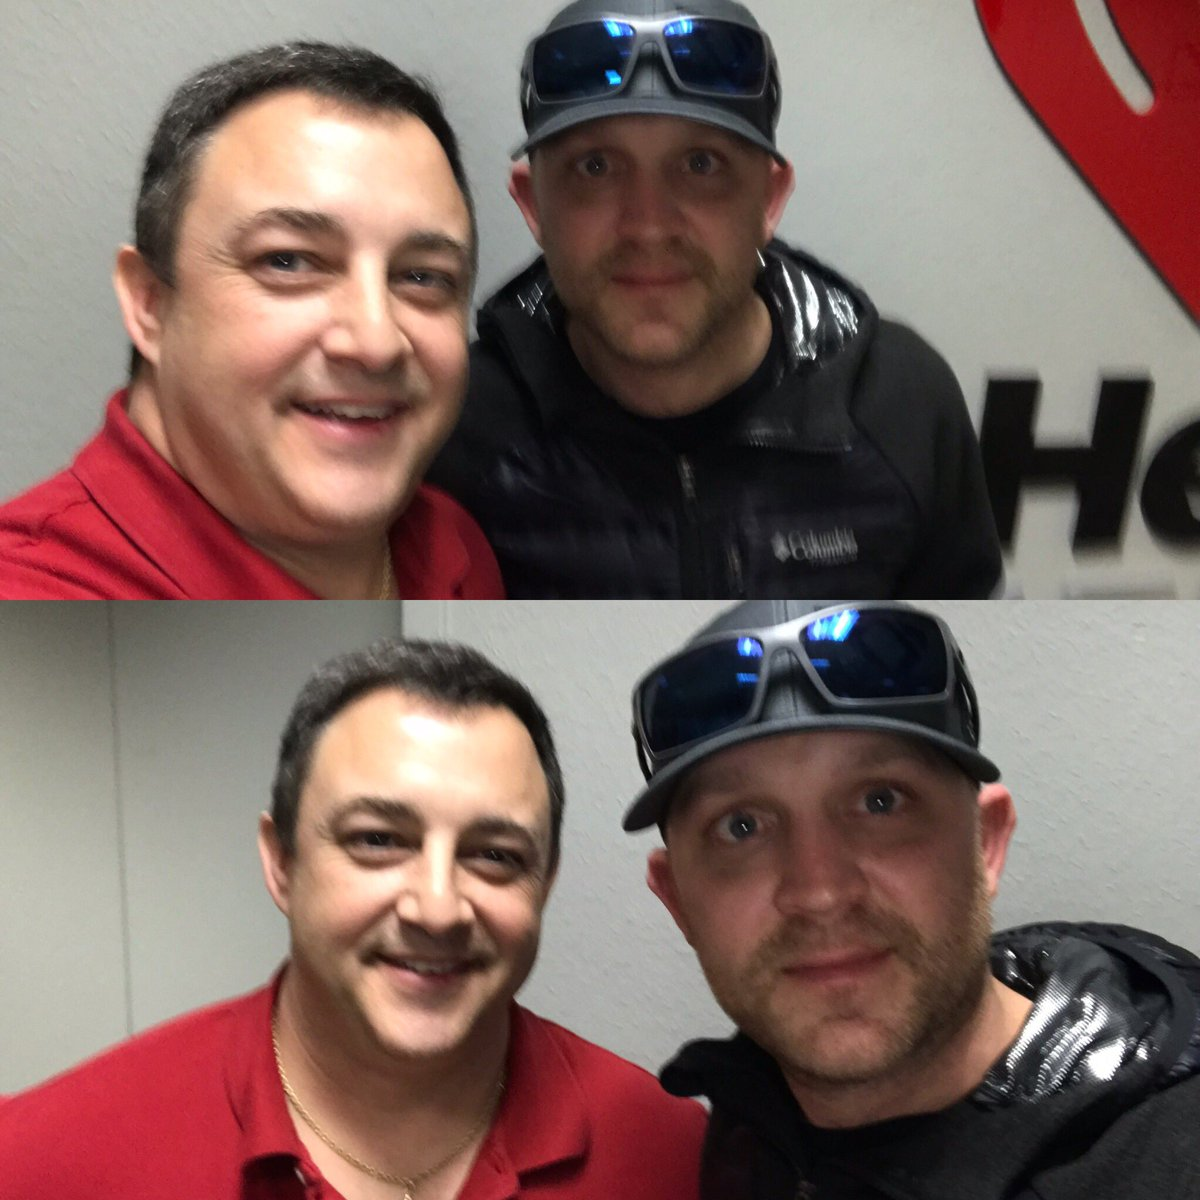 @JustinColeMoore Is on the air with us at  #SelfieWar mine is on top, Justin Moore's is on bottom… Like the one you like the best?